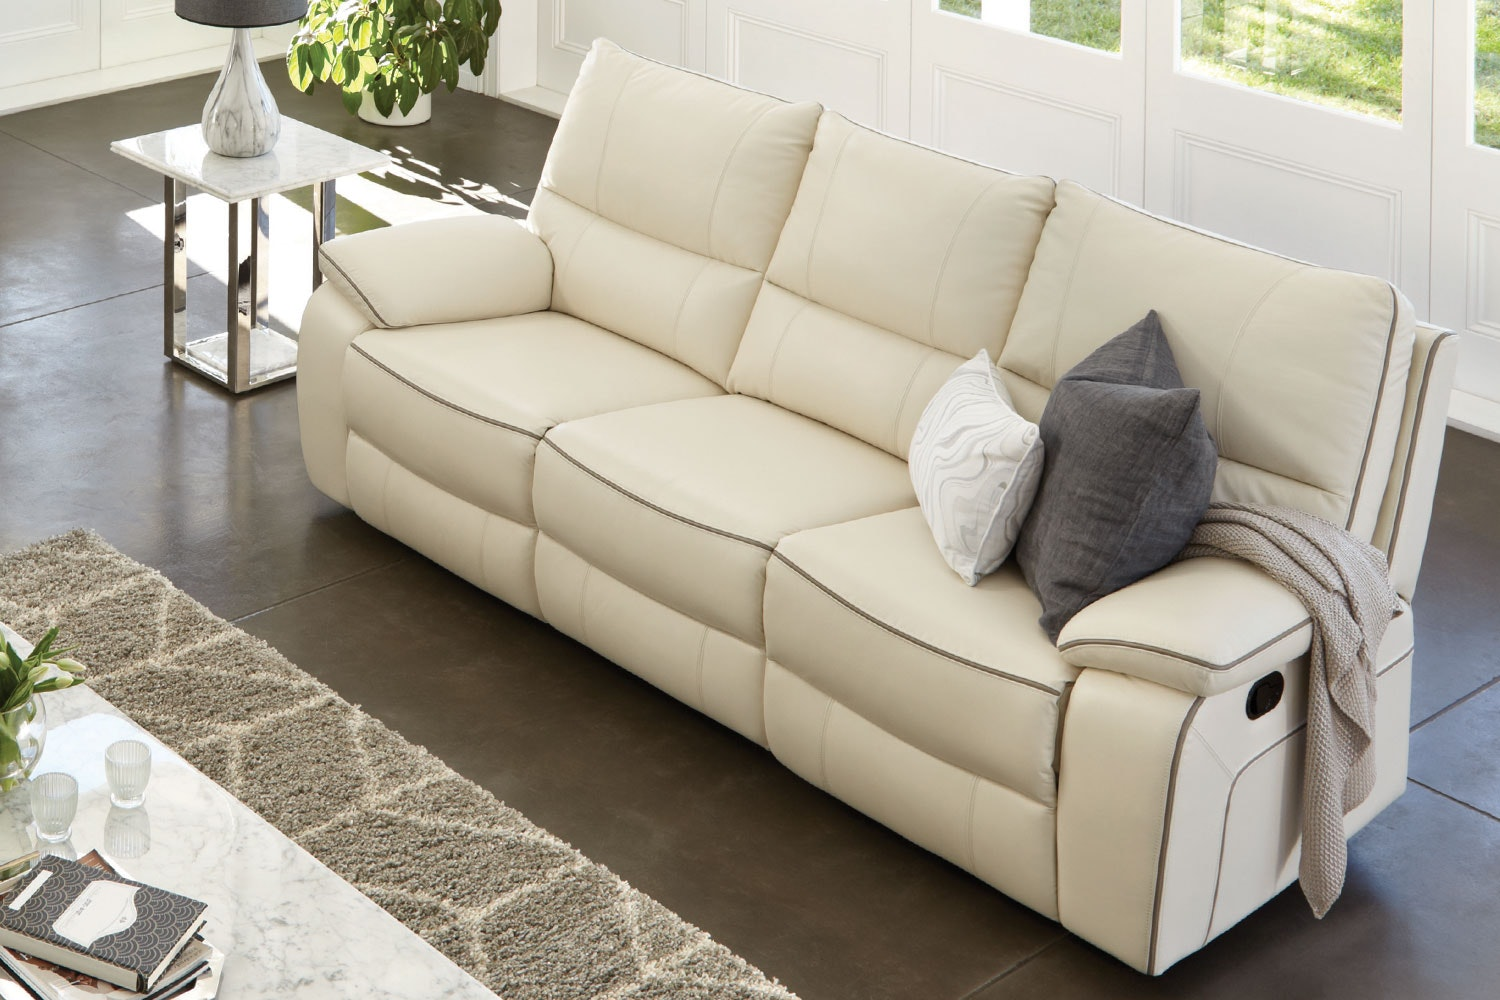 Strata 3 Seater Leather Recliner Sofa by Synargy